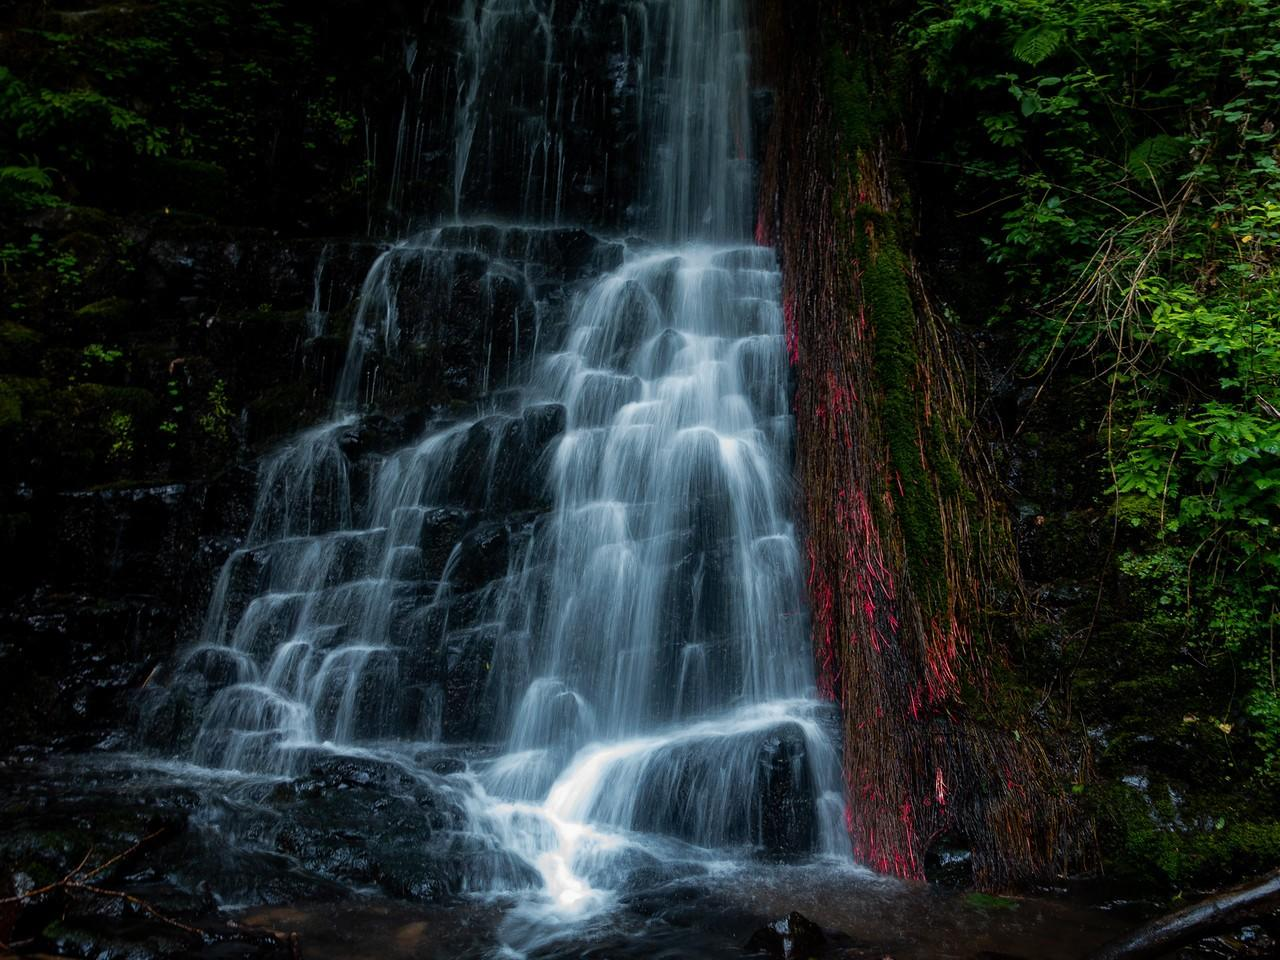 Coopey Creek, Color and light in the waterfall: Dennis Reichelt